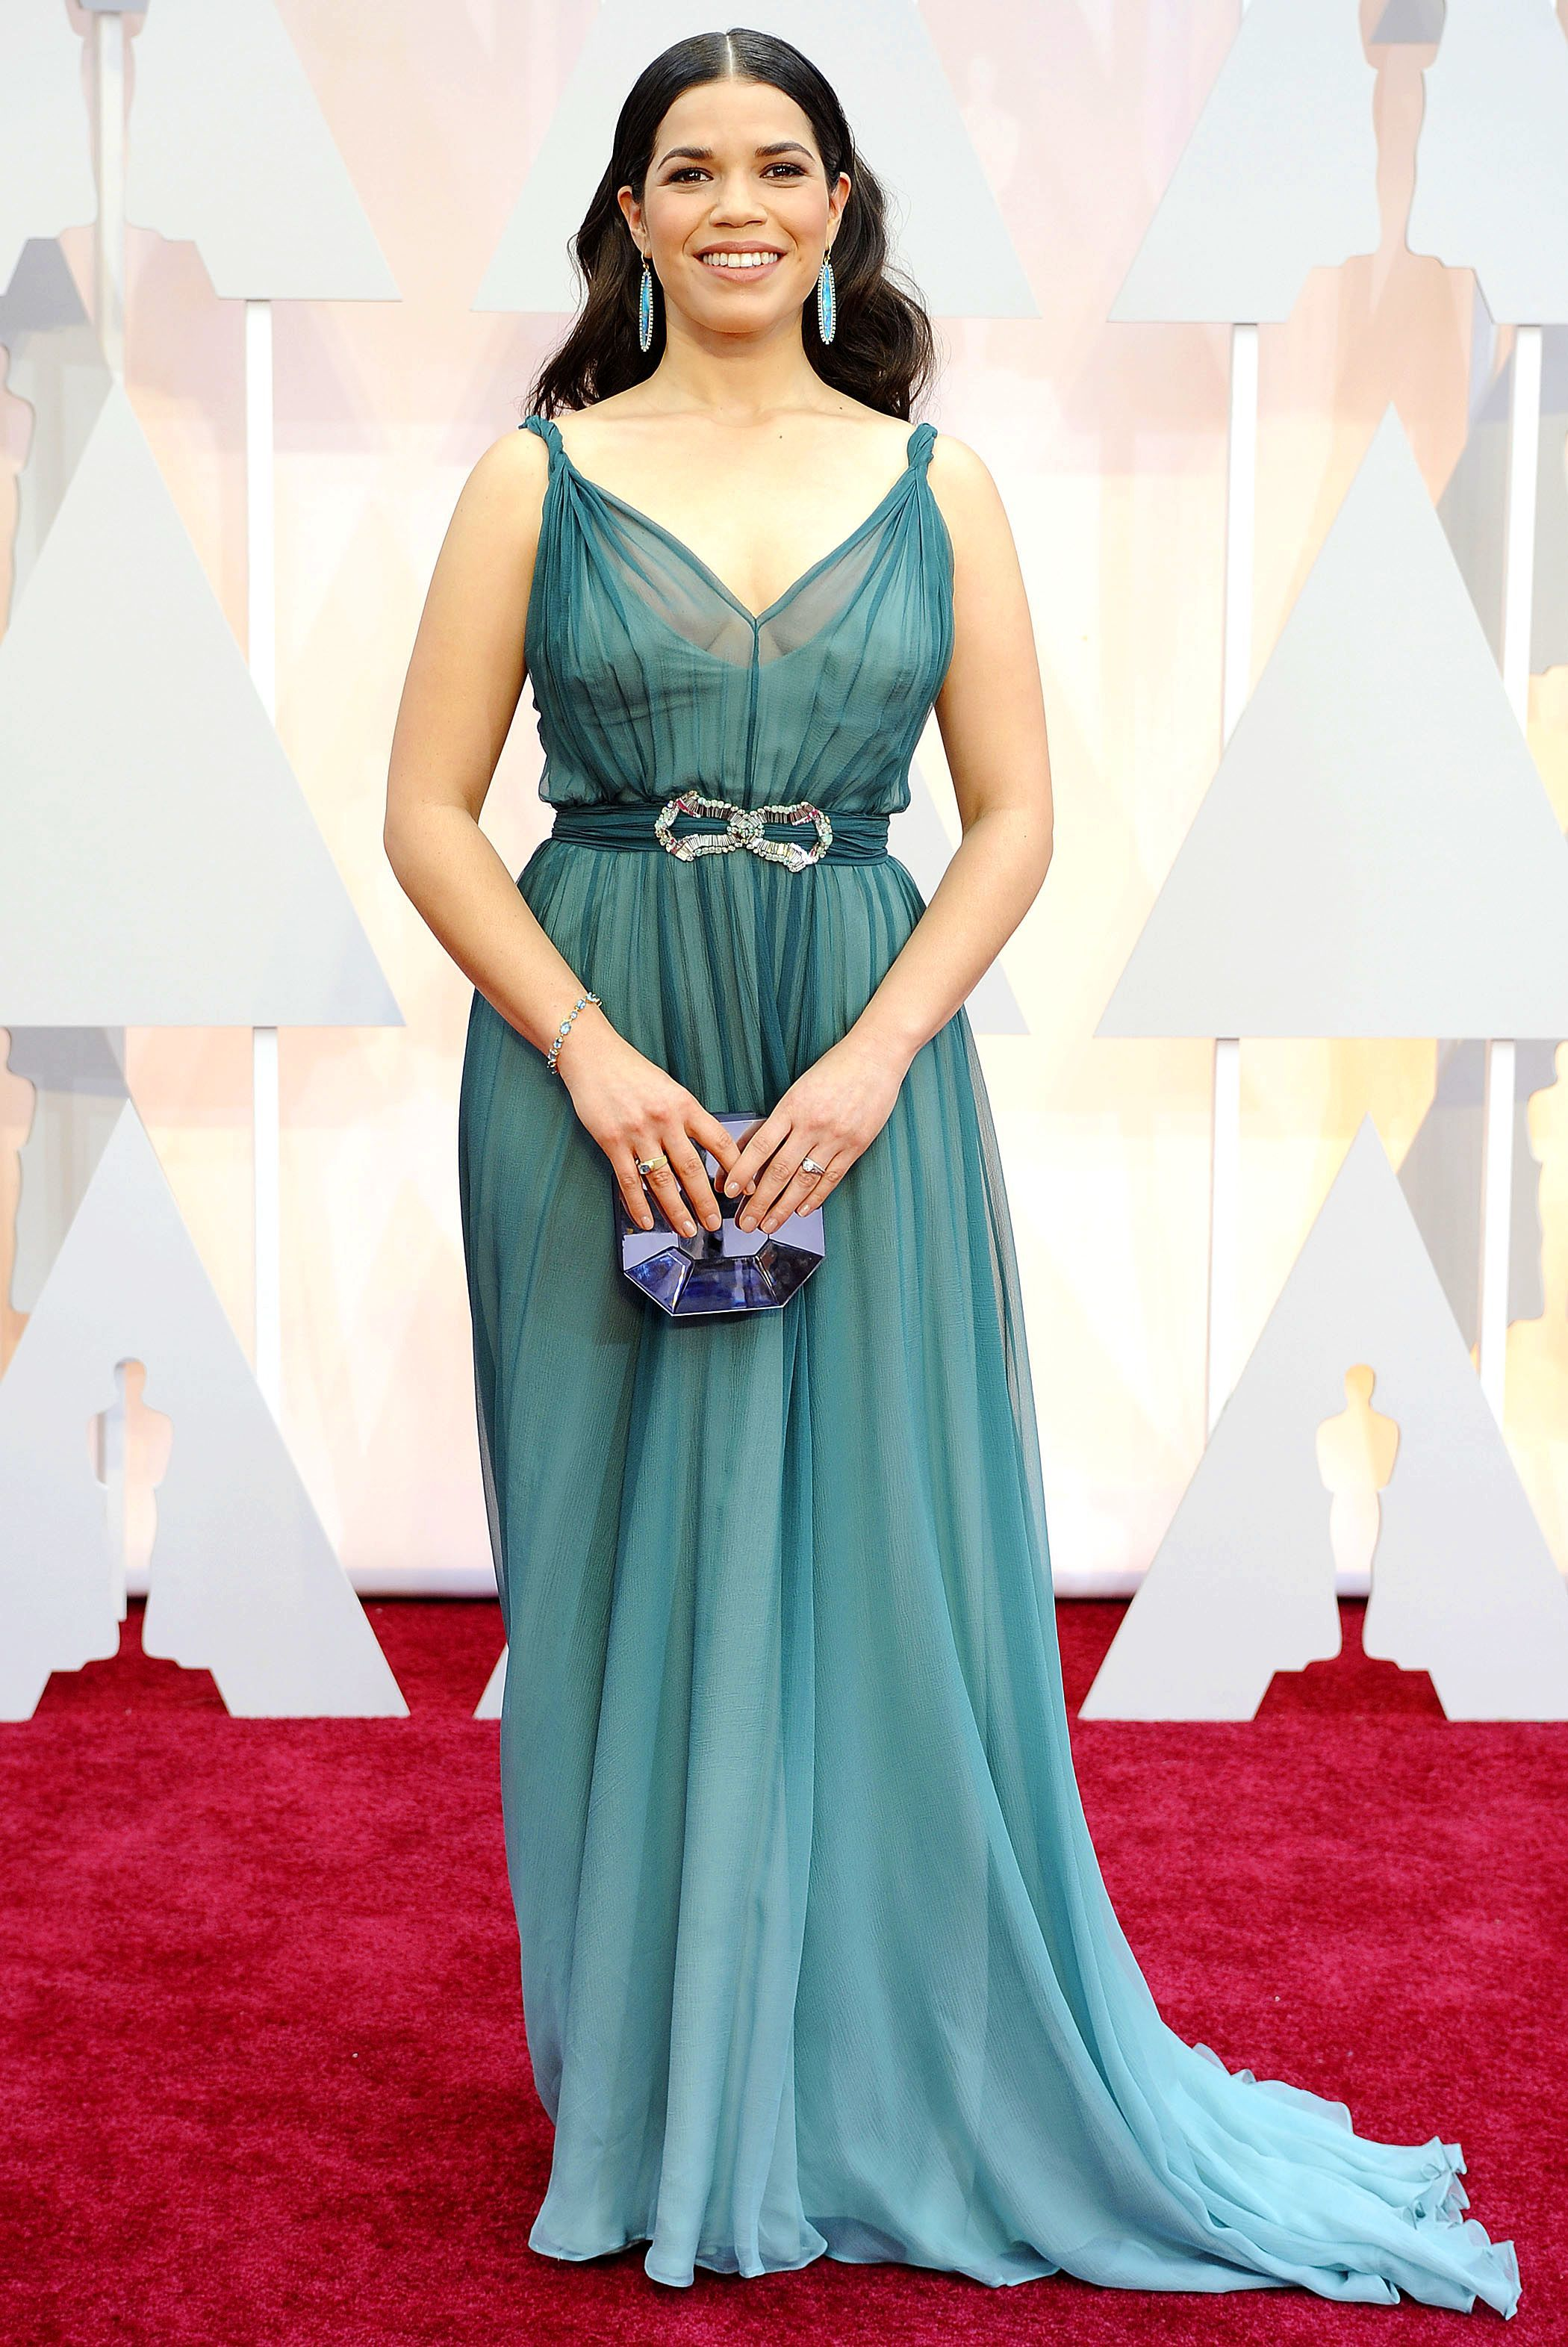 America Ferrera attends the Academy Awards at the Dolby Theatre in Los Angeles on Feb. 22, 2015.